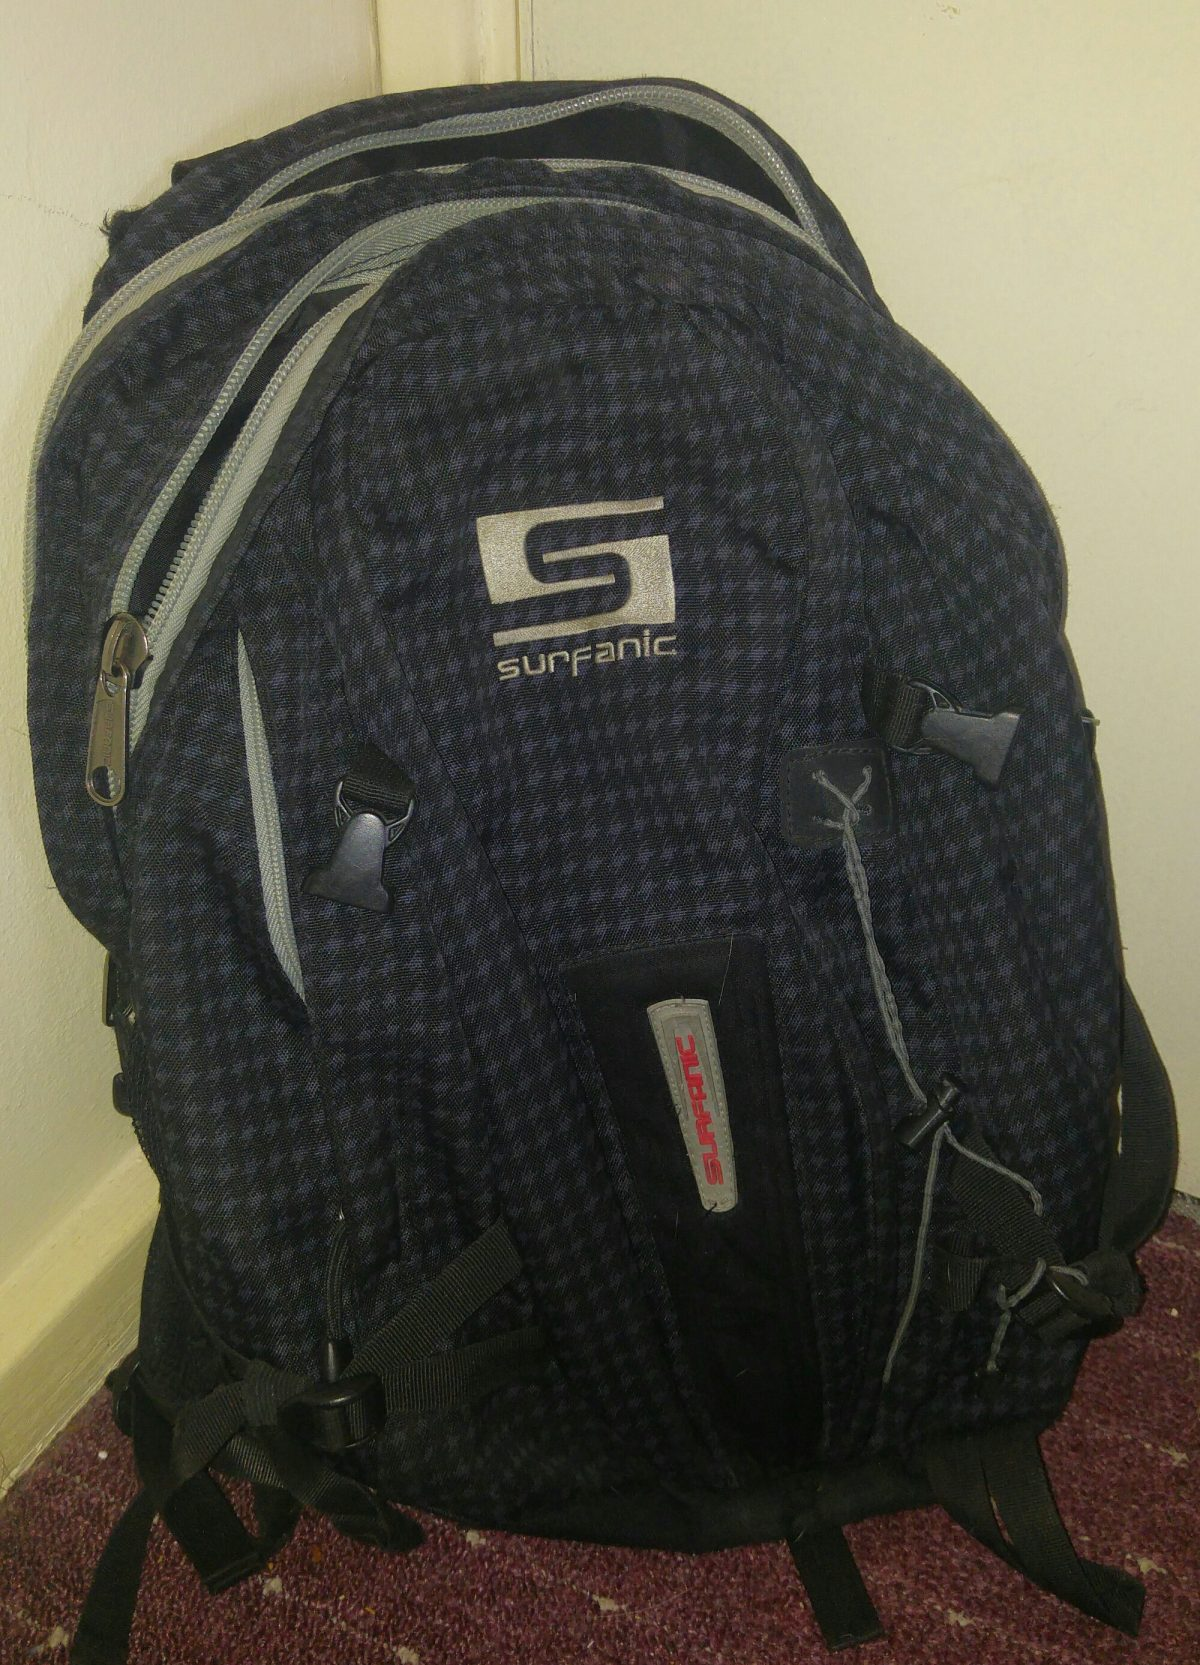 Surfanic backpack